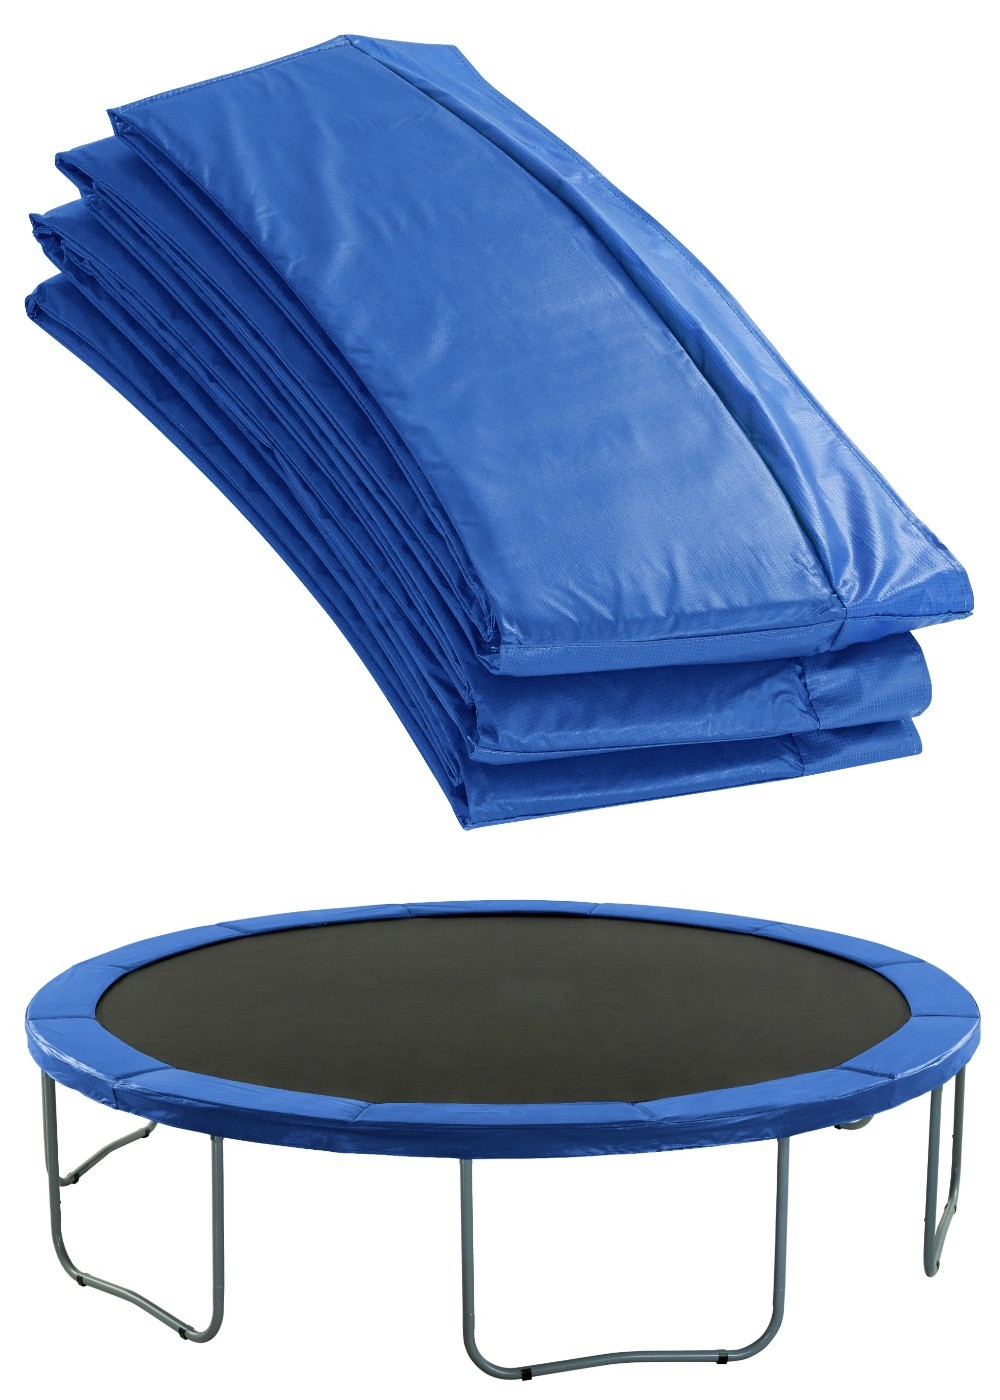 Super Trampoline Replacement Safety Pad (Spring Cover) Fits for 15 FT. Round Frames - Blue